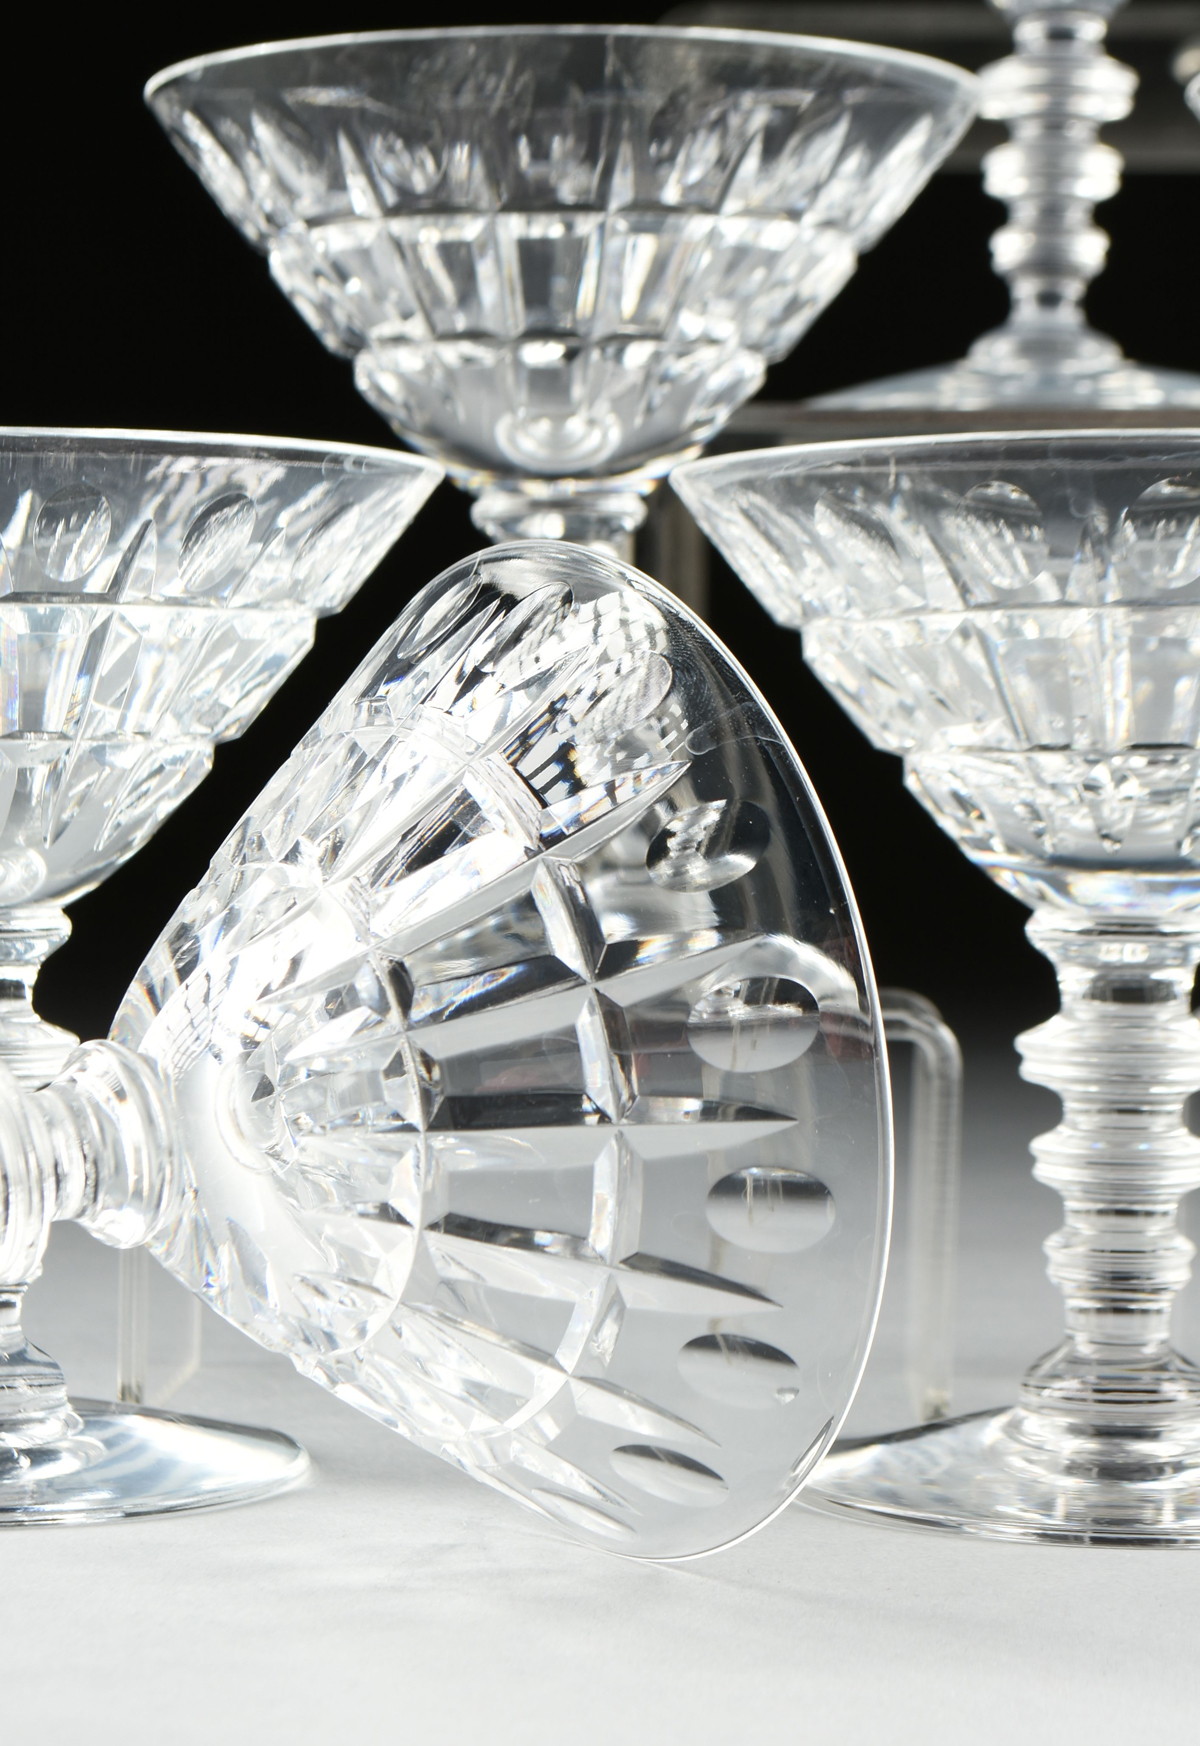 Lot 26 - A SET OF TWELVE HAWKES CUT GLASS CHAMPAGNE COUPE STEMWARE, VERNAY PATTERN, SIGNED, 20TH CENTURY,